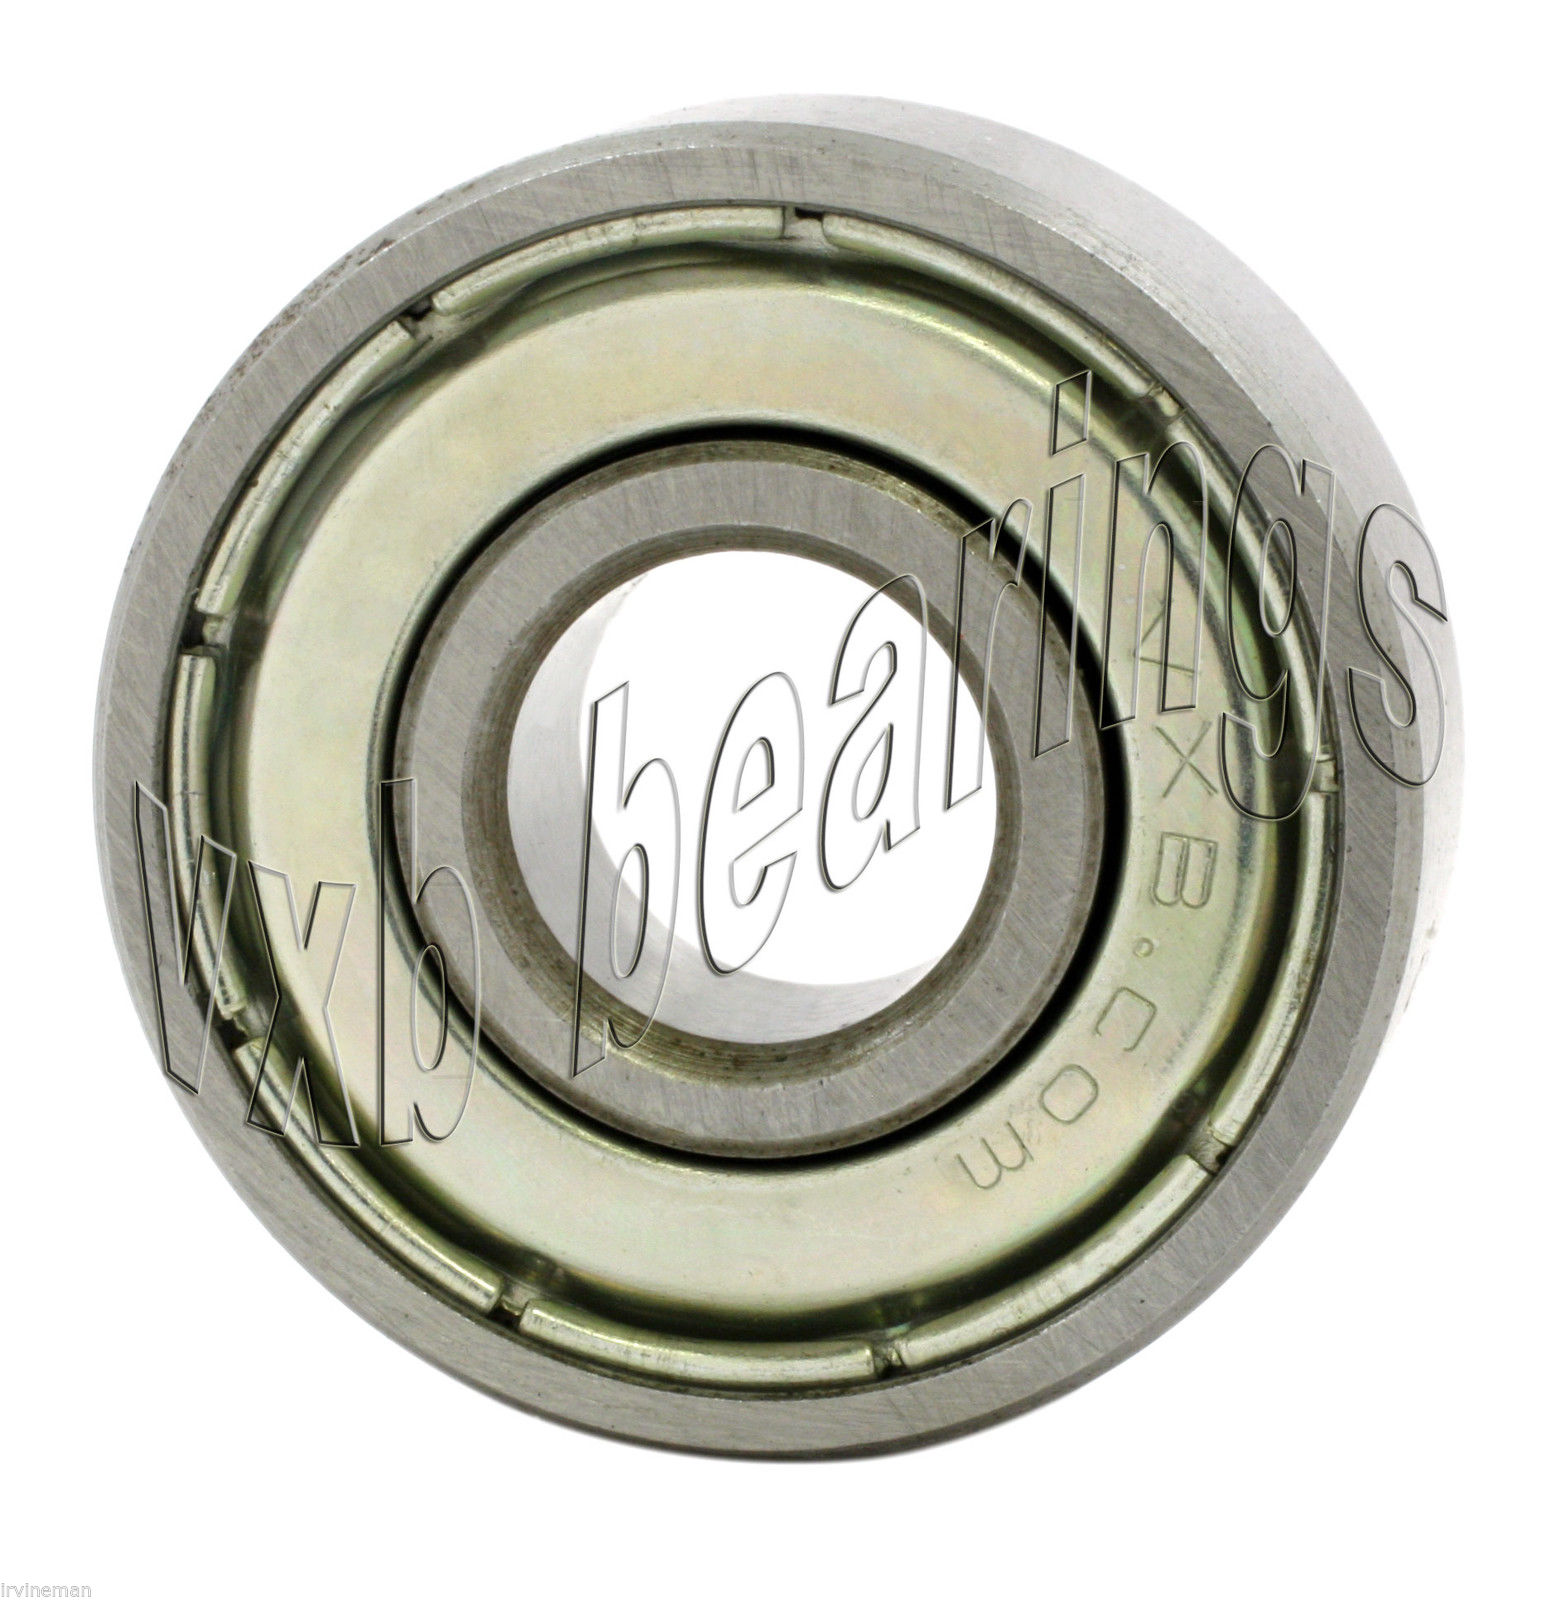 high temperature S623ZZ Ceramic Bearing Stainless Steel Premium ABEC-5 Shielded Dry 3x10x4